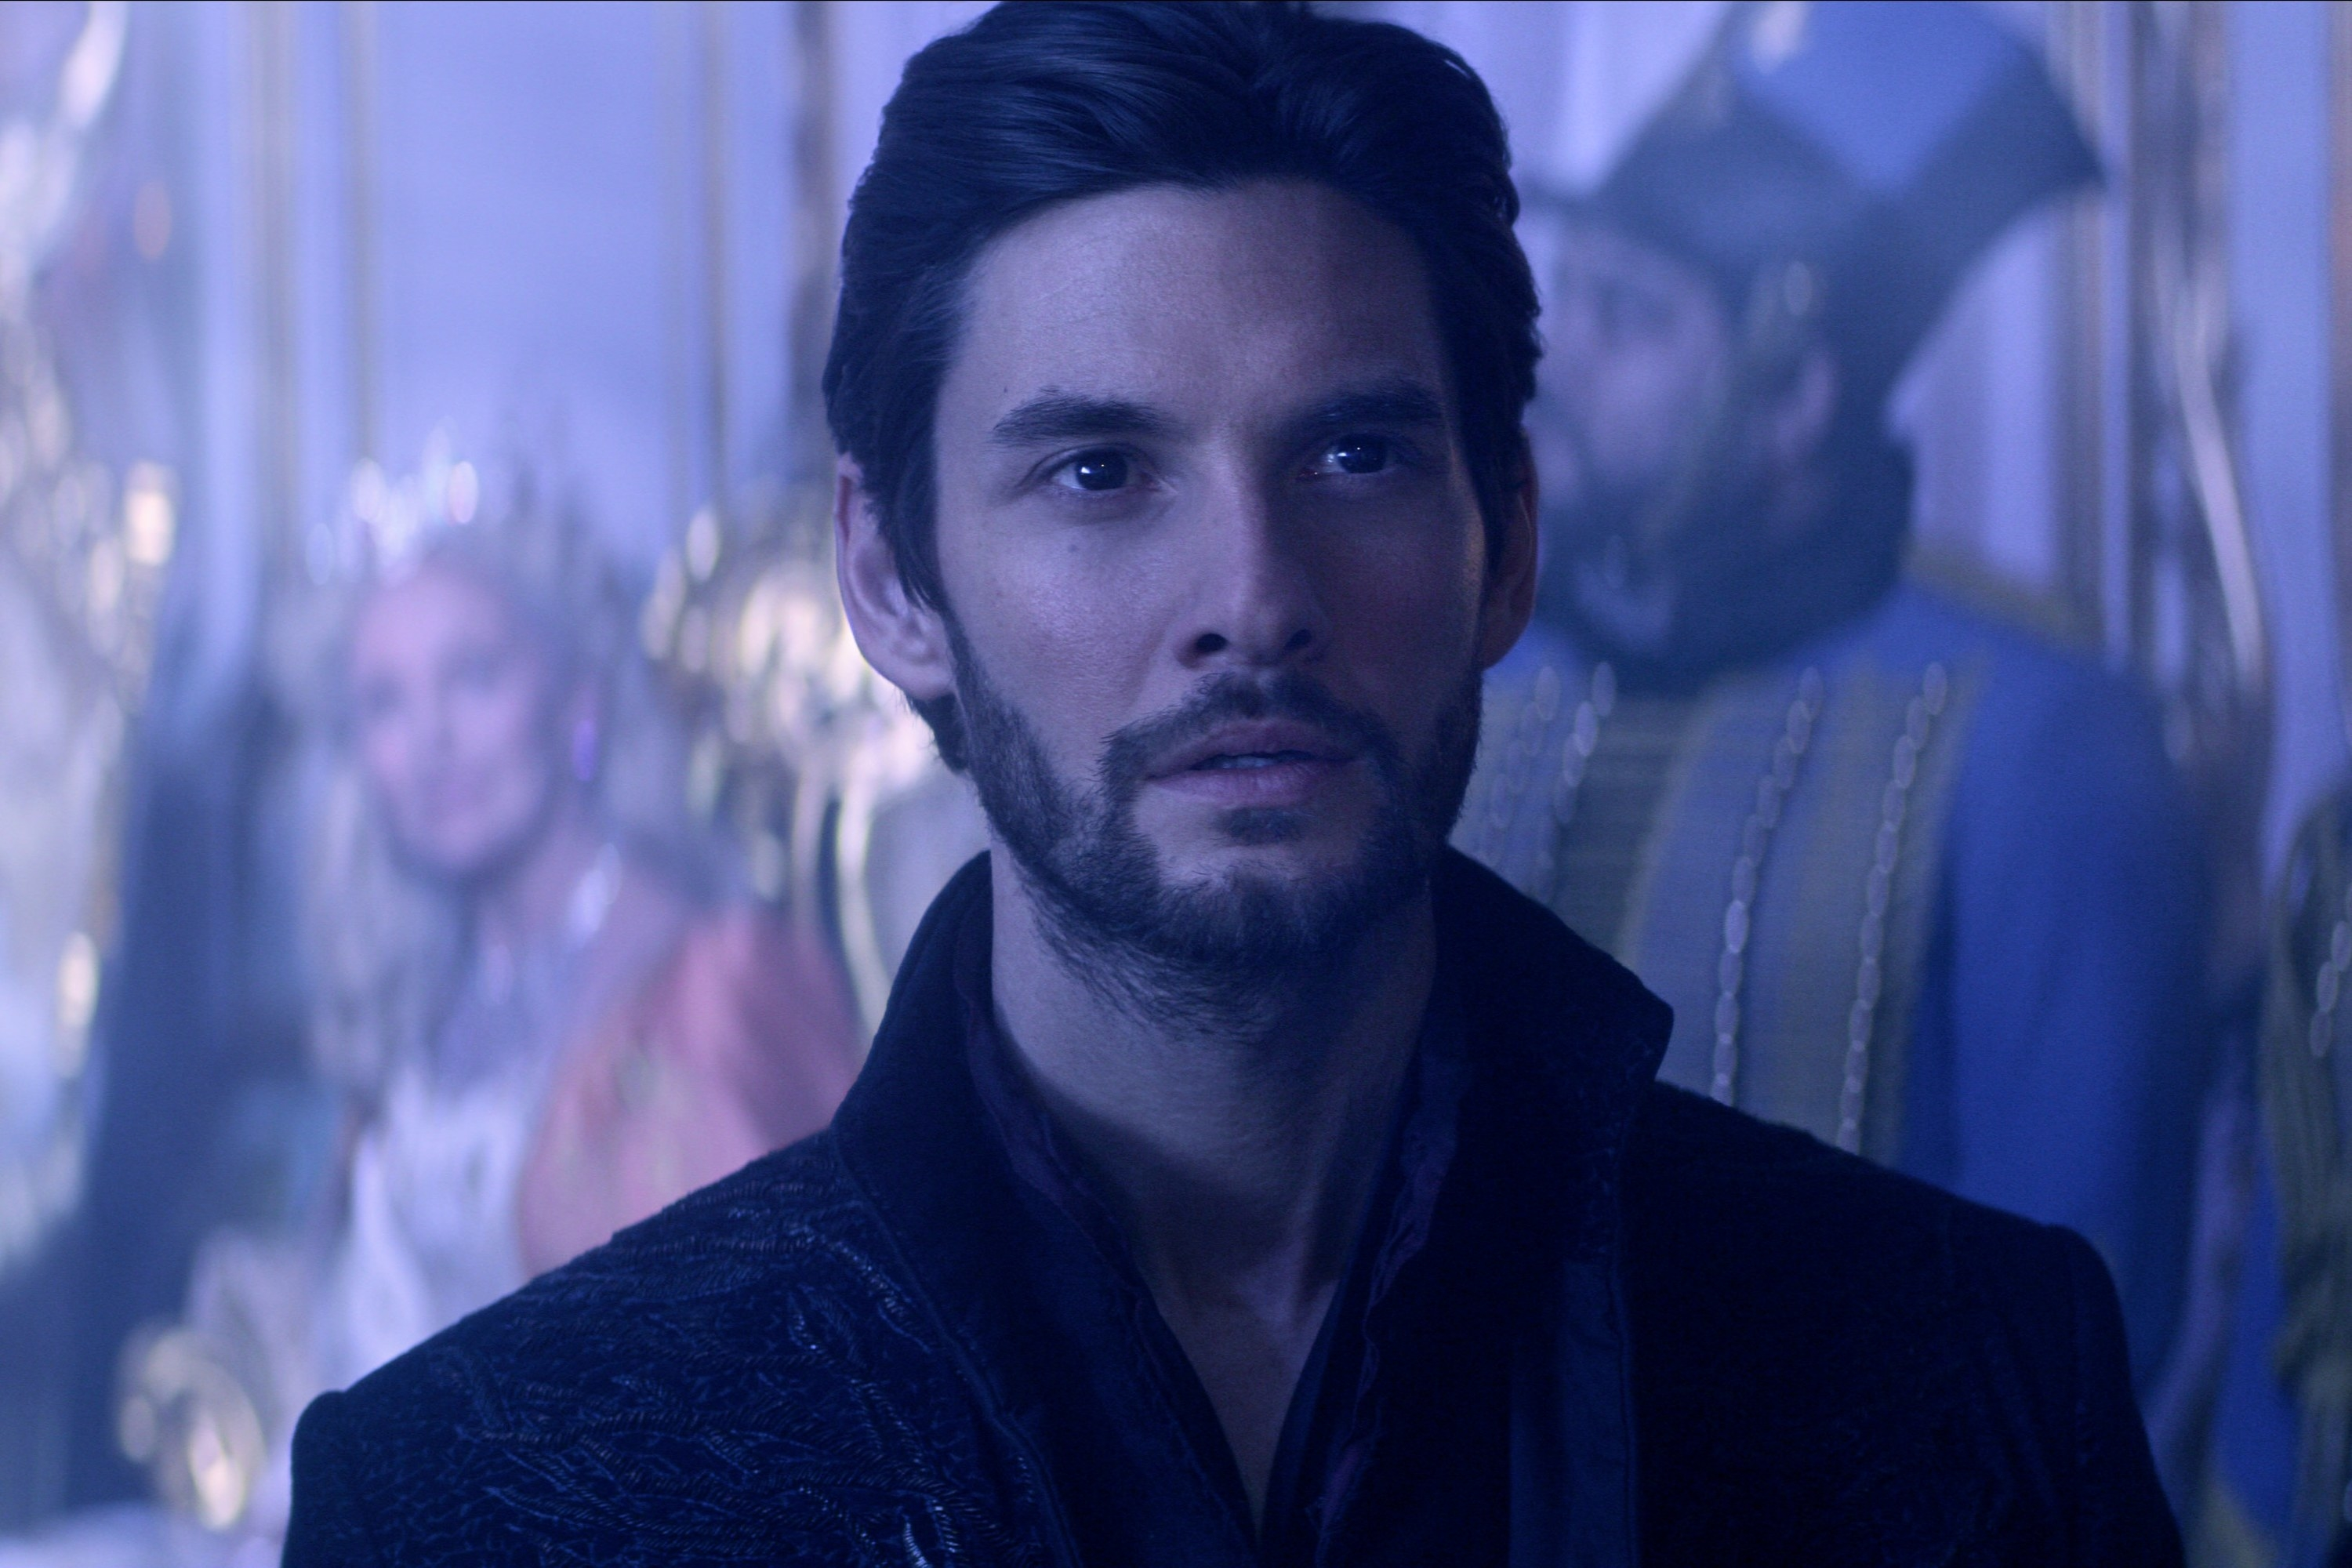 BEN BARNES as THE DARKLING/GENERAL KIRIGAN